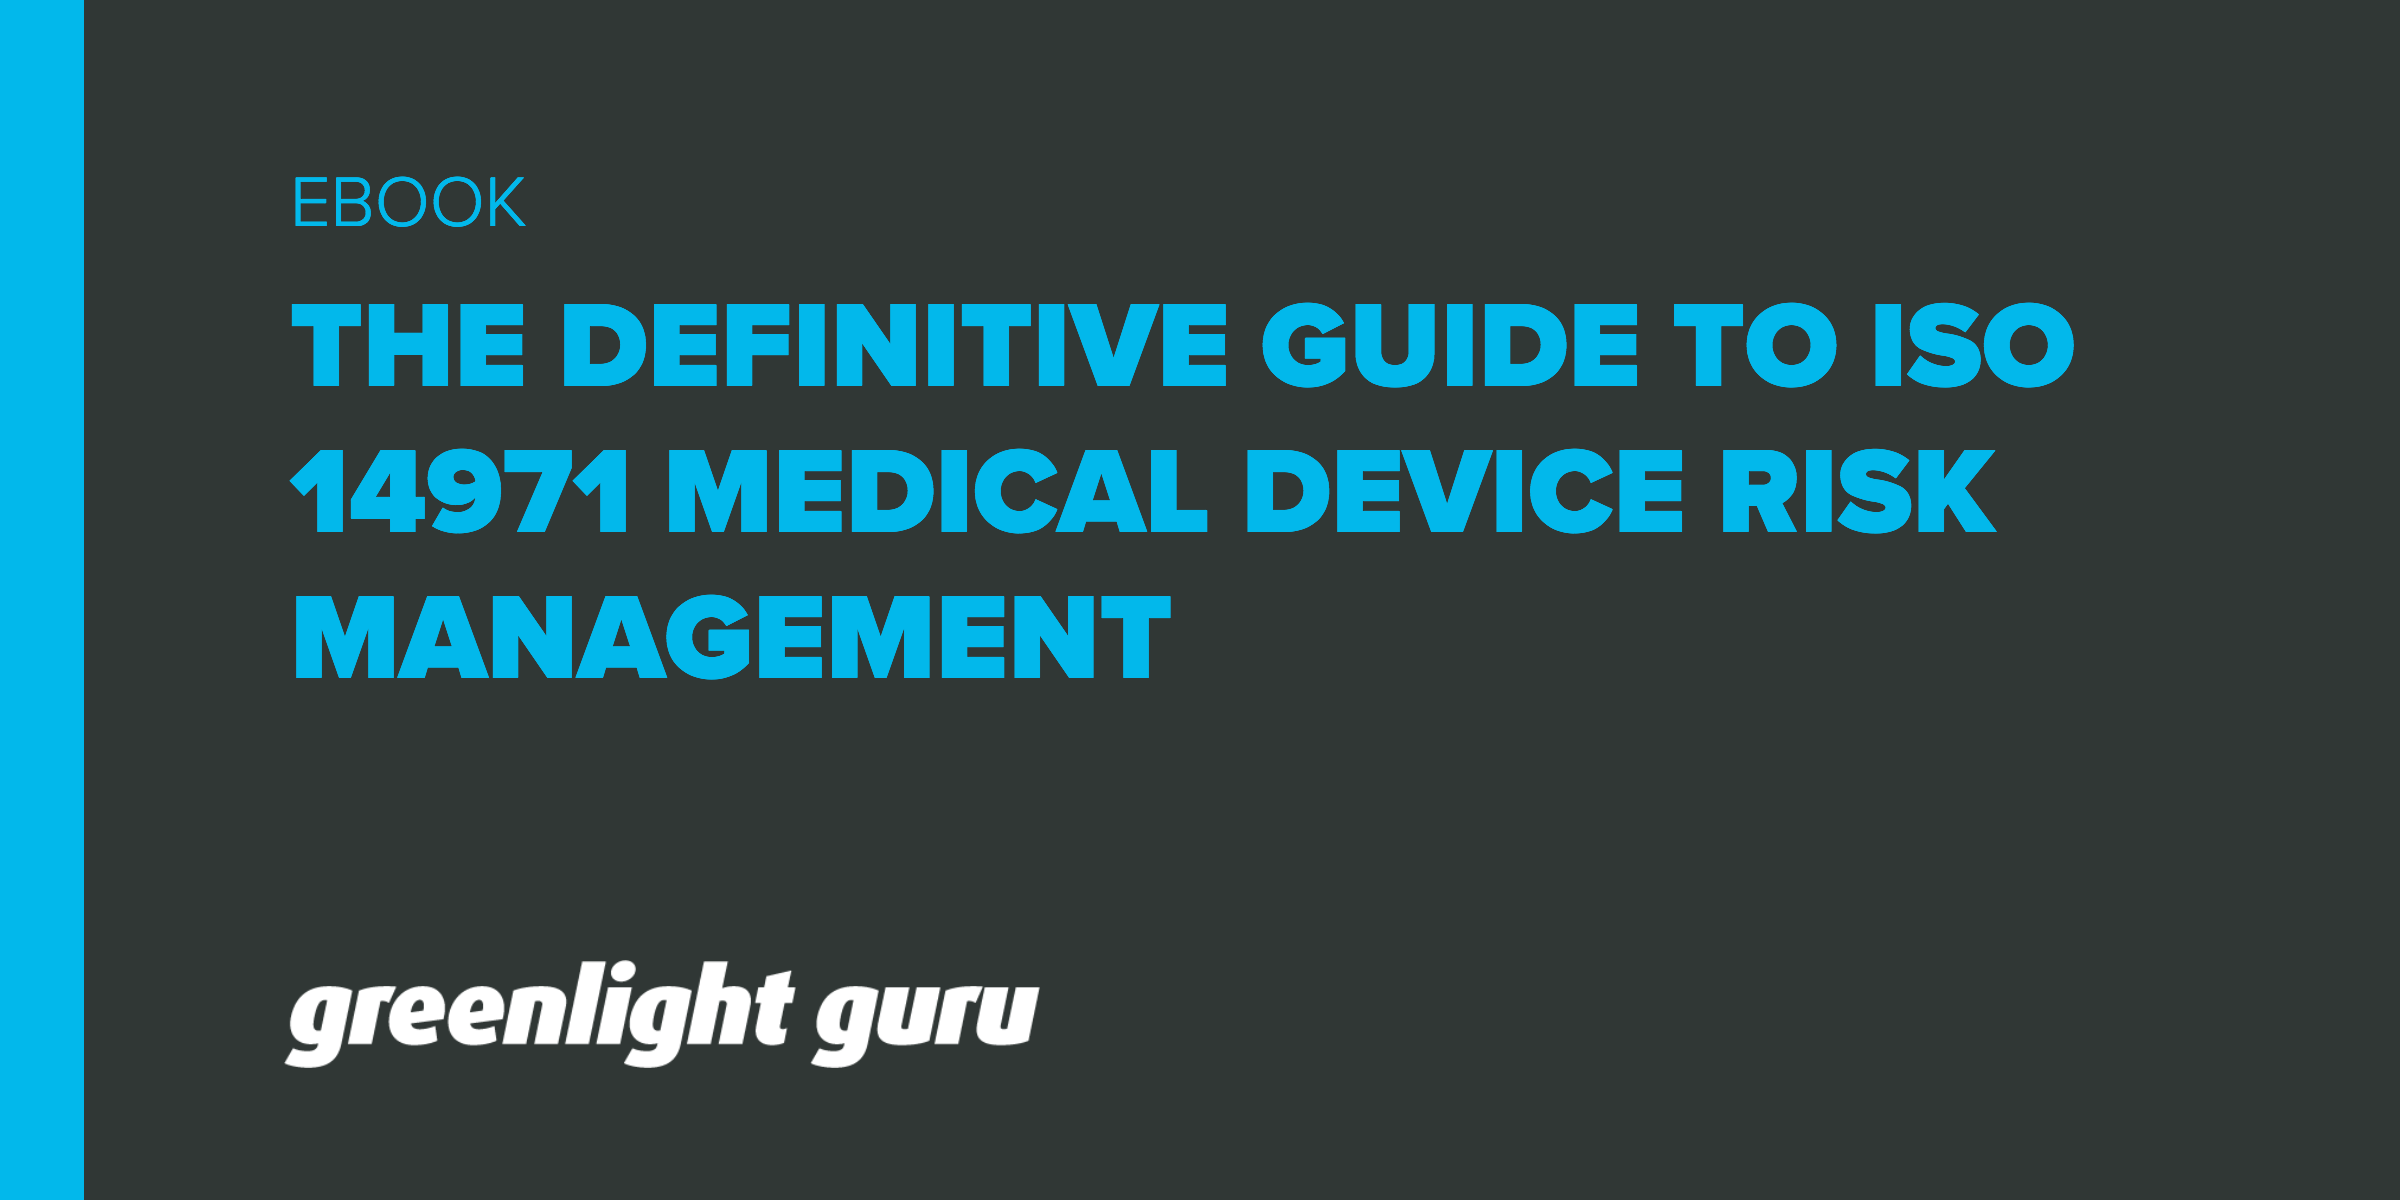 The Definitive Guide to ISO 14971 Risk Management for Medical Devices - Featured Image